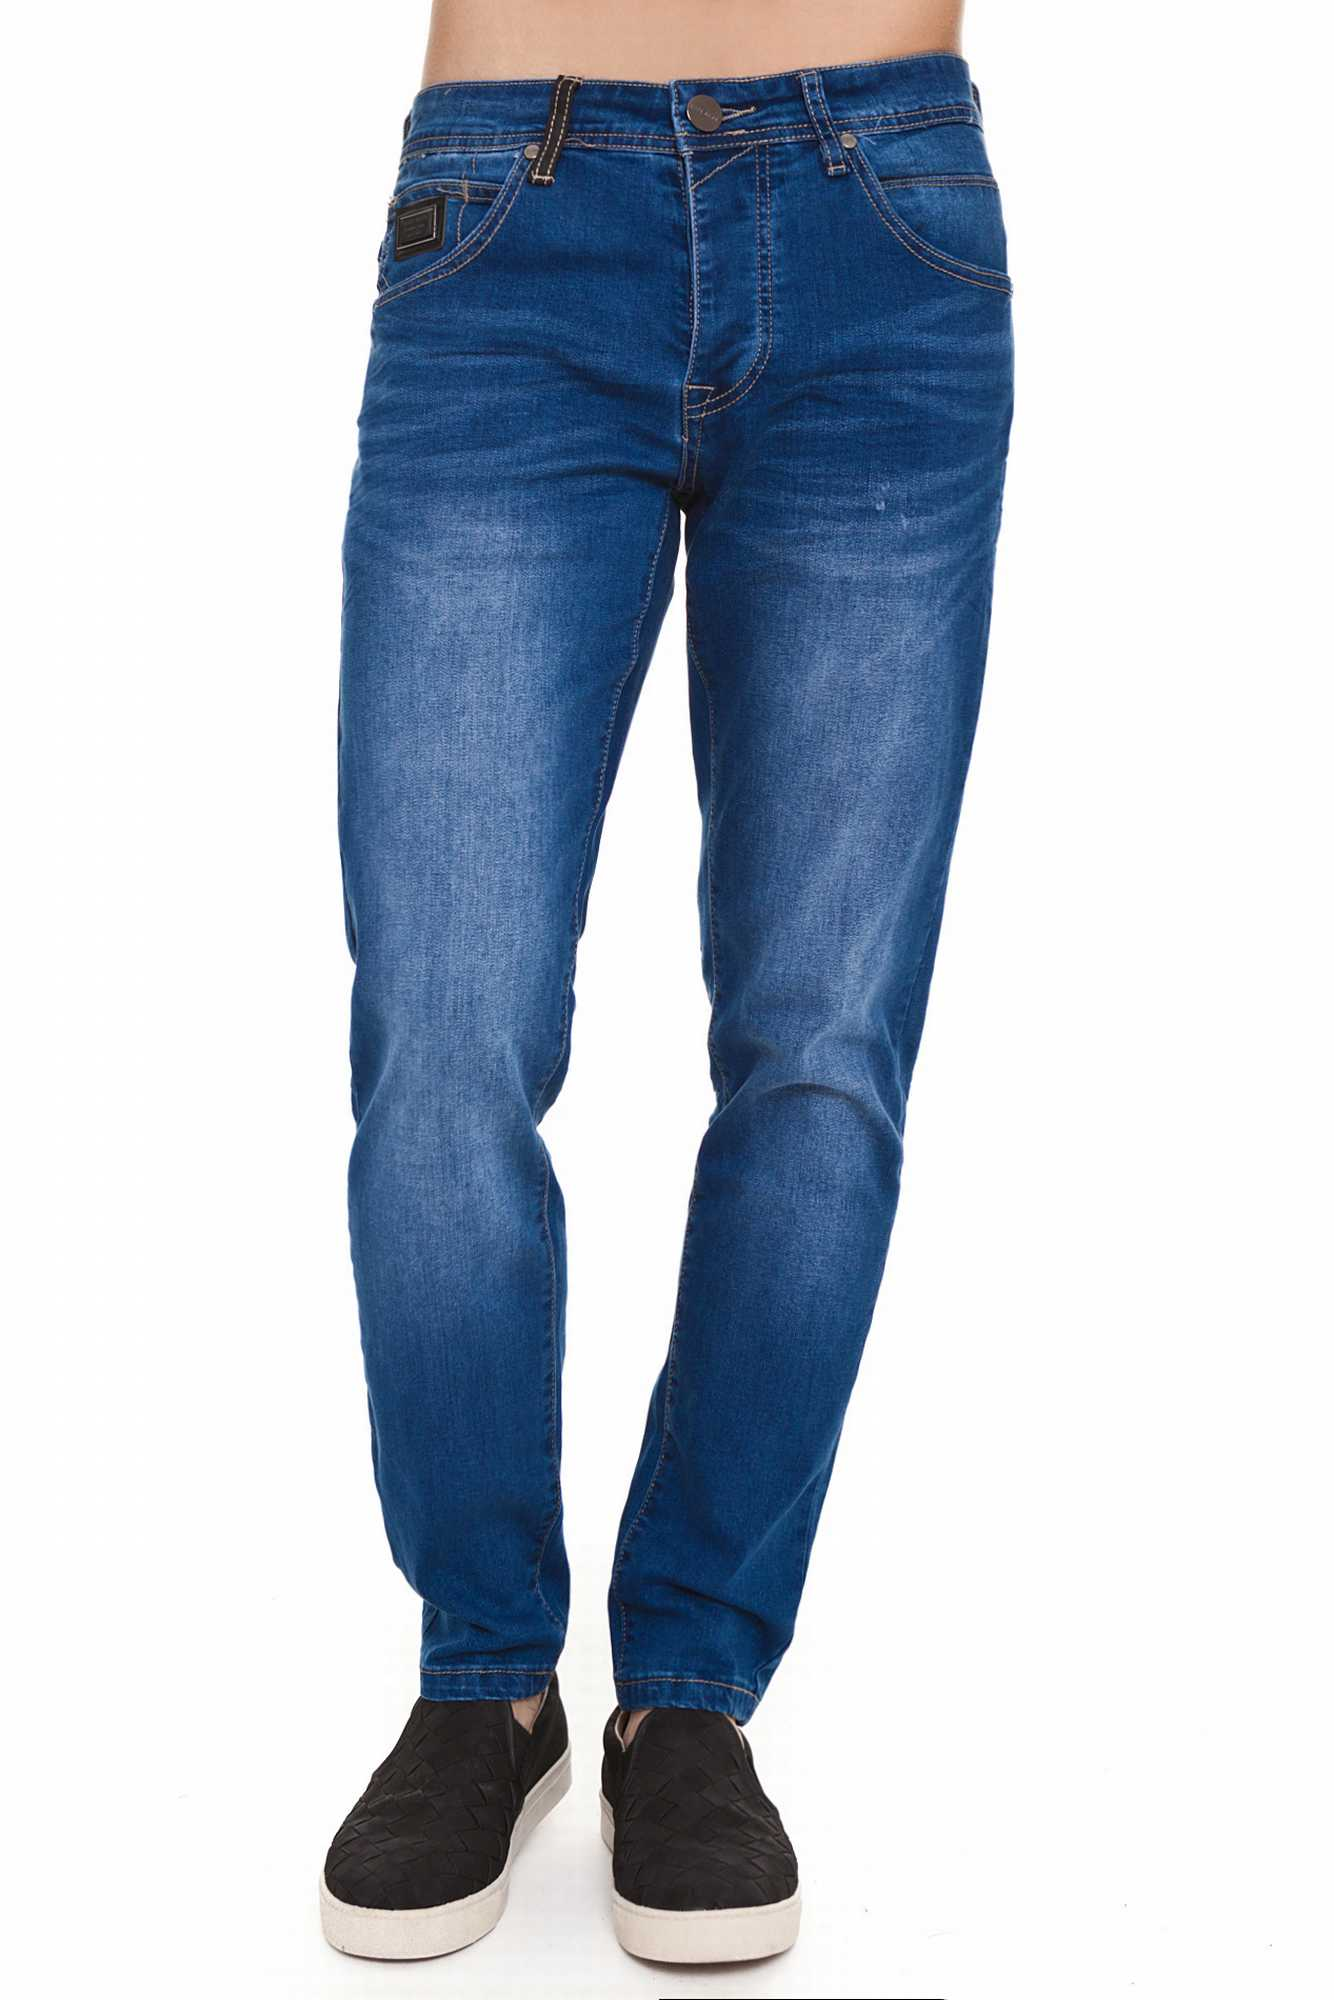 Born Rich OSMIUM Jeans For Men Dark Blue MID Wash Casual BR2B109914MW3BRC2-5